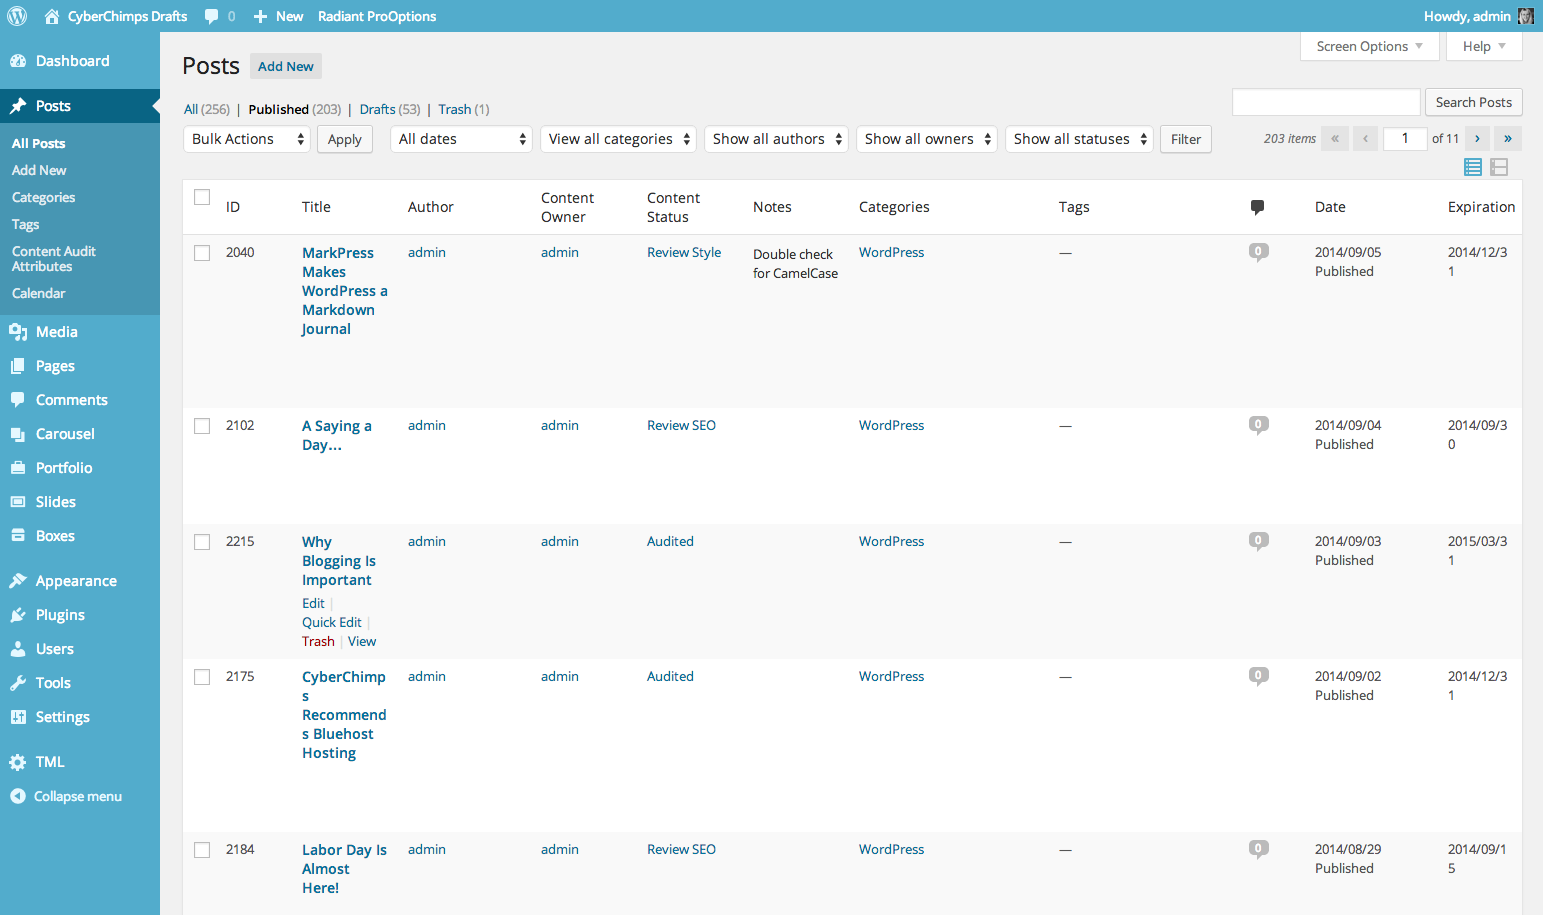 Content Audit columns on Posts screen